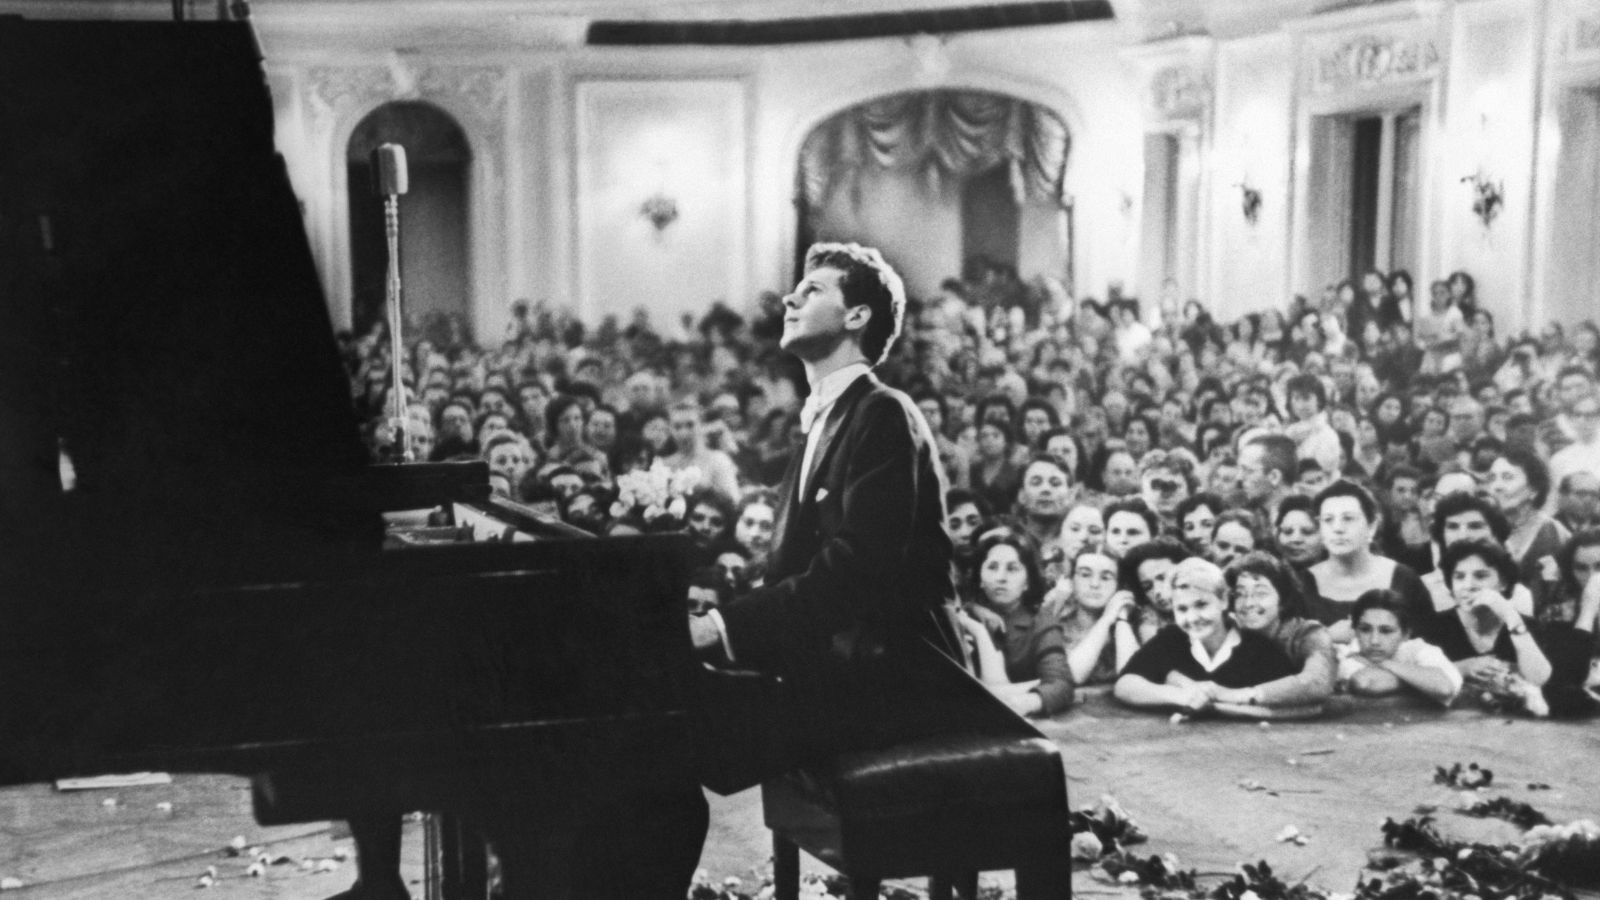 Van Cliburn Steinway And Sons Piano Artist Available in Spirio Library